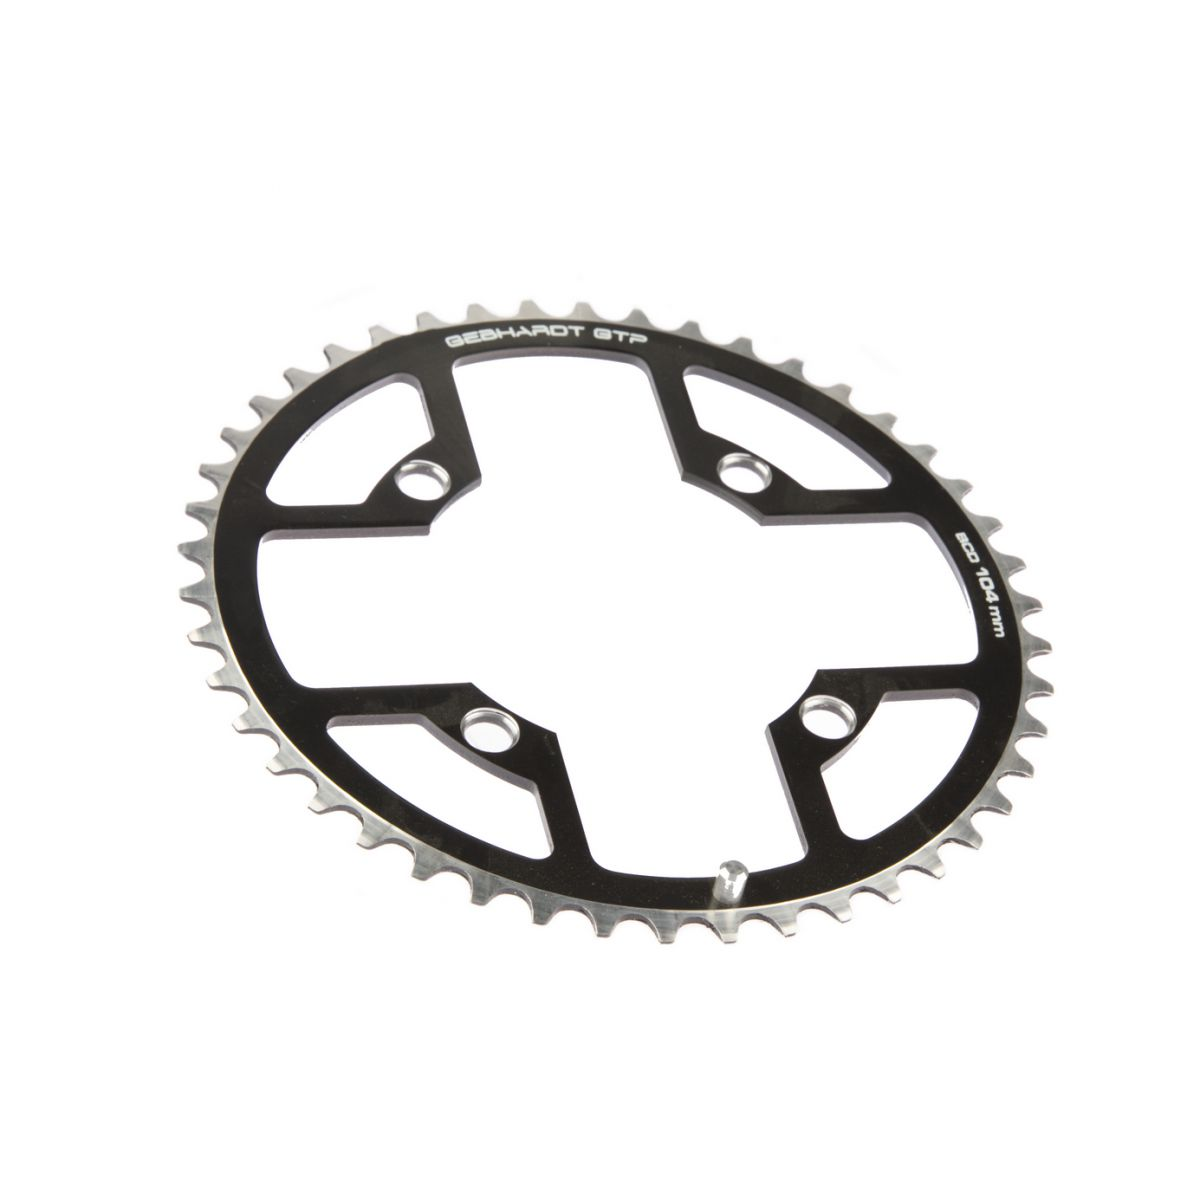 gebhardt chainring classic bcd 104 mm 4hole 42t black